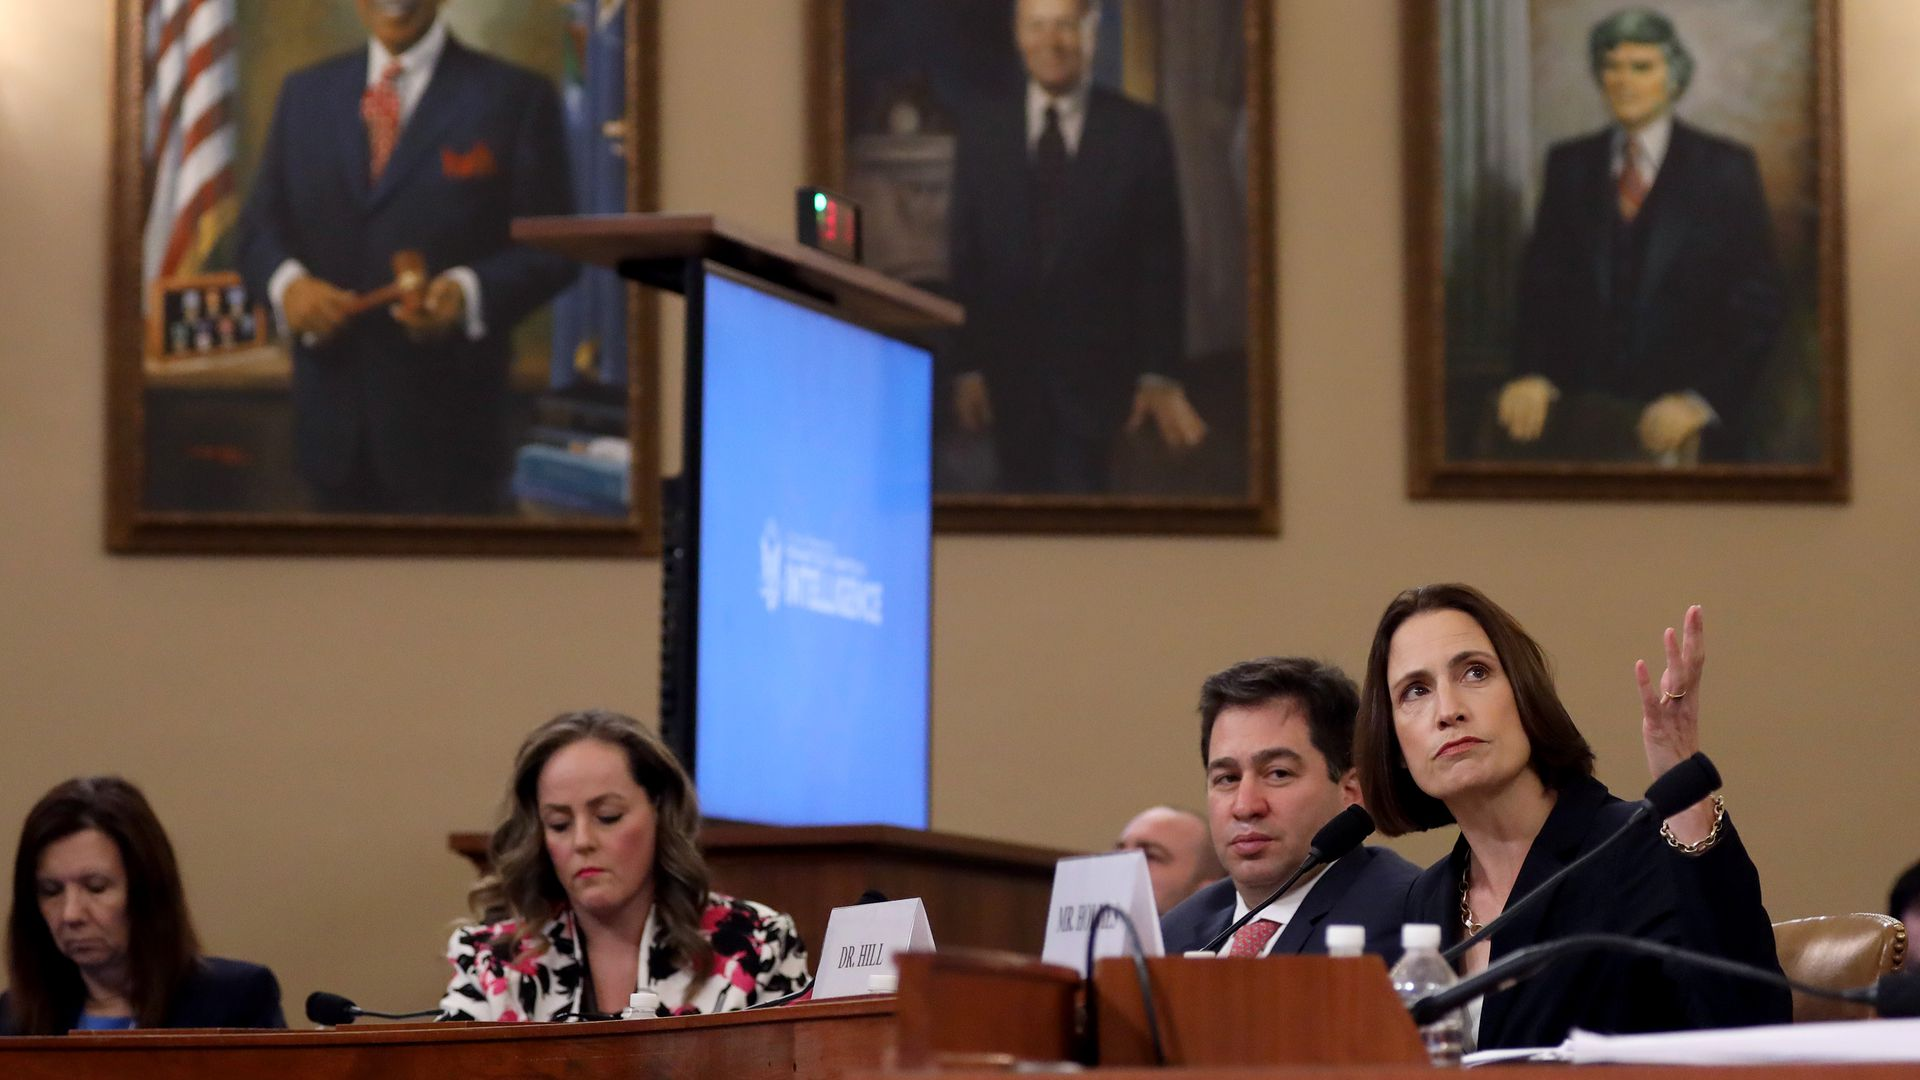 Fiona Hill testifies yesterday in the House Ways and Means Committee hearing room. Photo: Drew Angerer/Getty Images